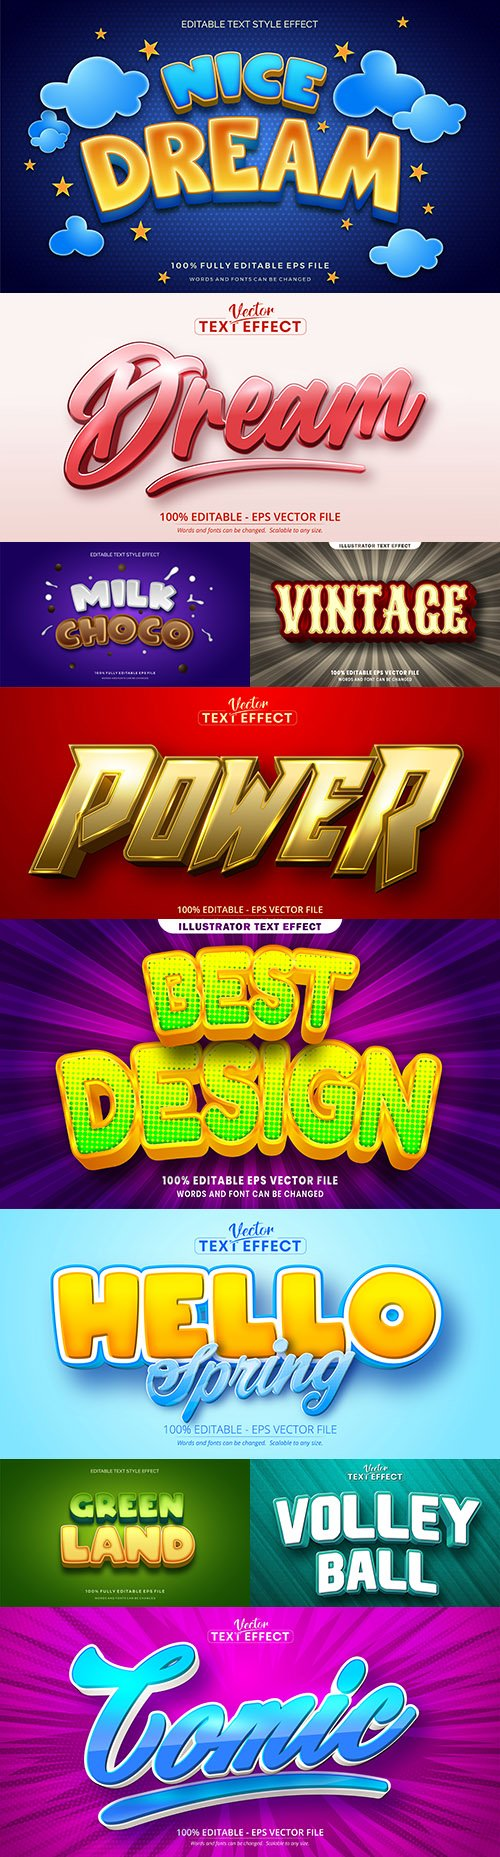 Editable font and 3d effect text design collection illustration 22